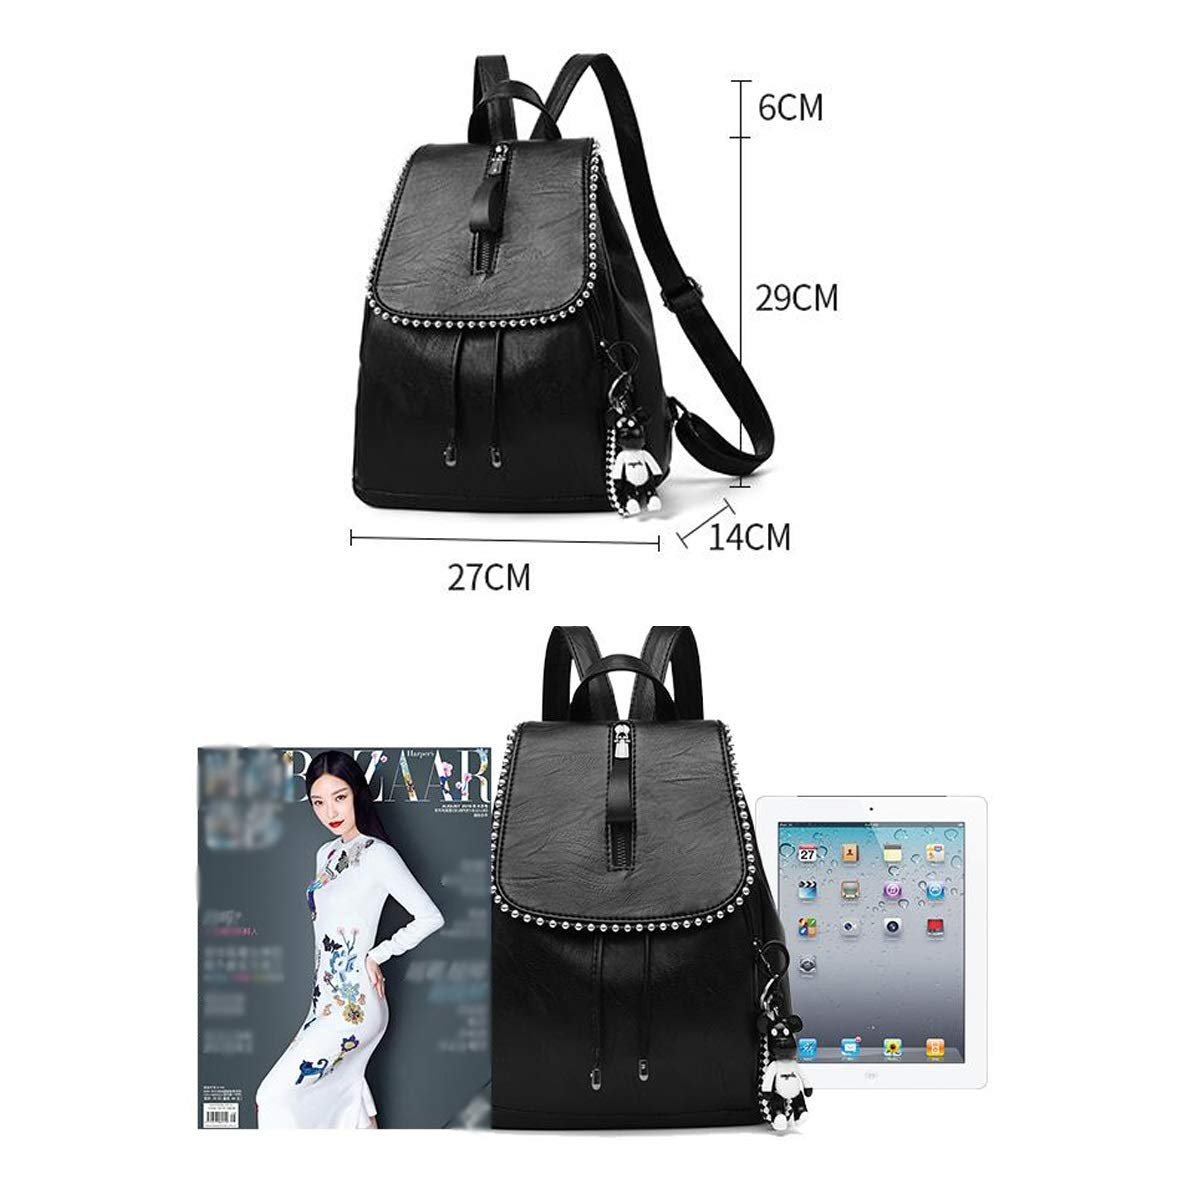 Black Color : Black, Size : 27cm29cm14cm School Travel Work Outdoor Fashion and Leisure PU Leather ZHICHUANG The Girls Versatile Backpack is Perfect for Everyday Travel for Women /& Men